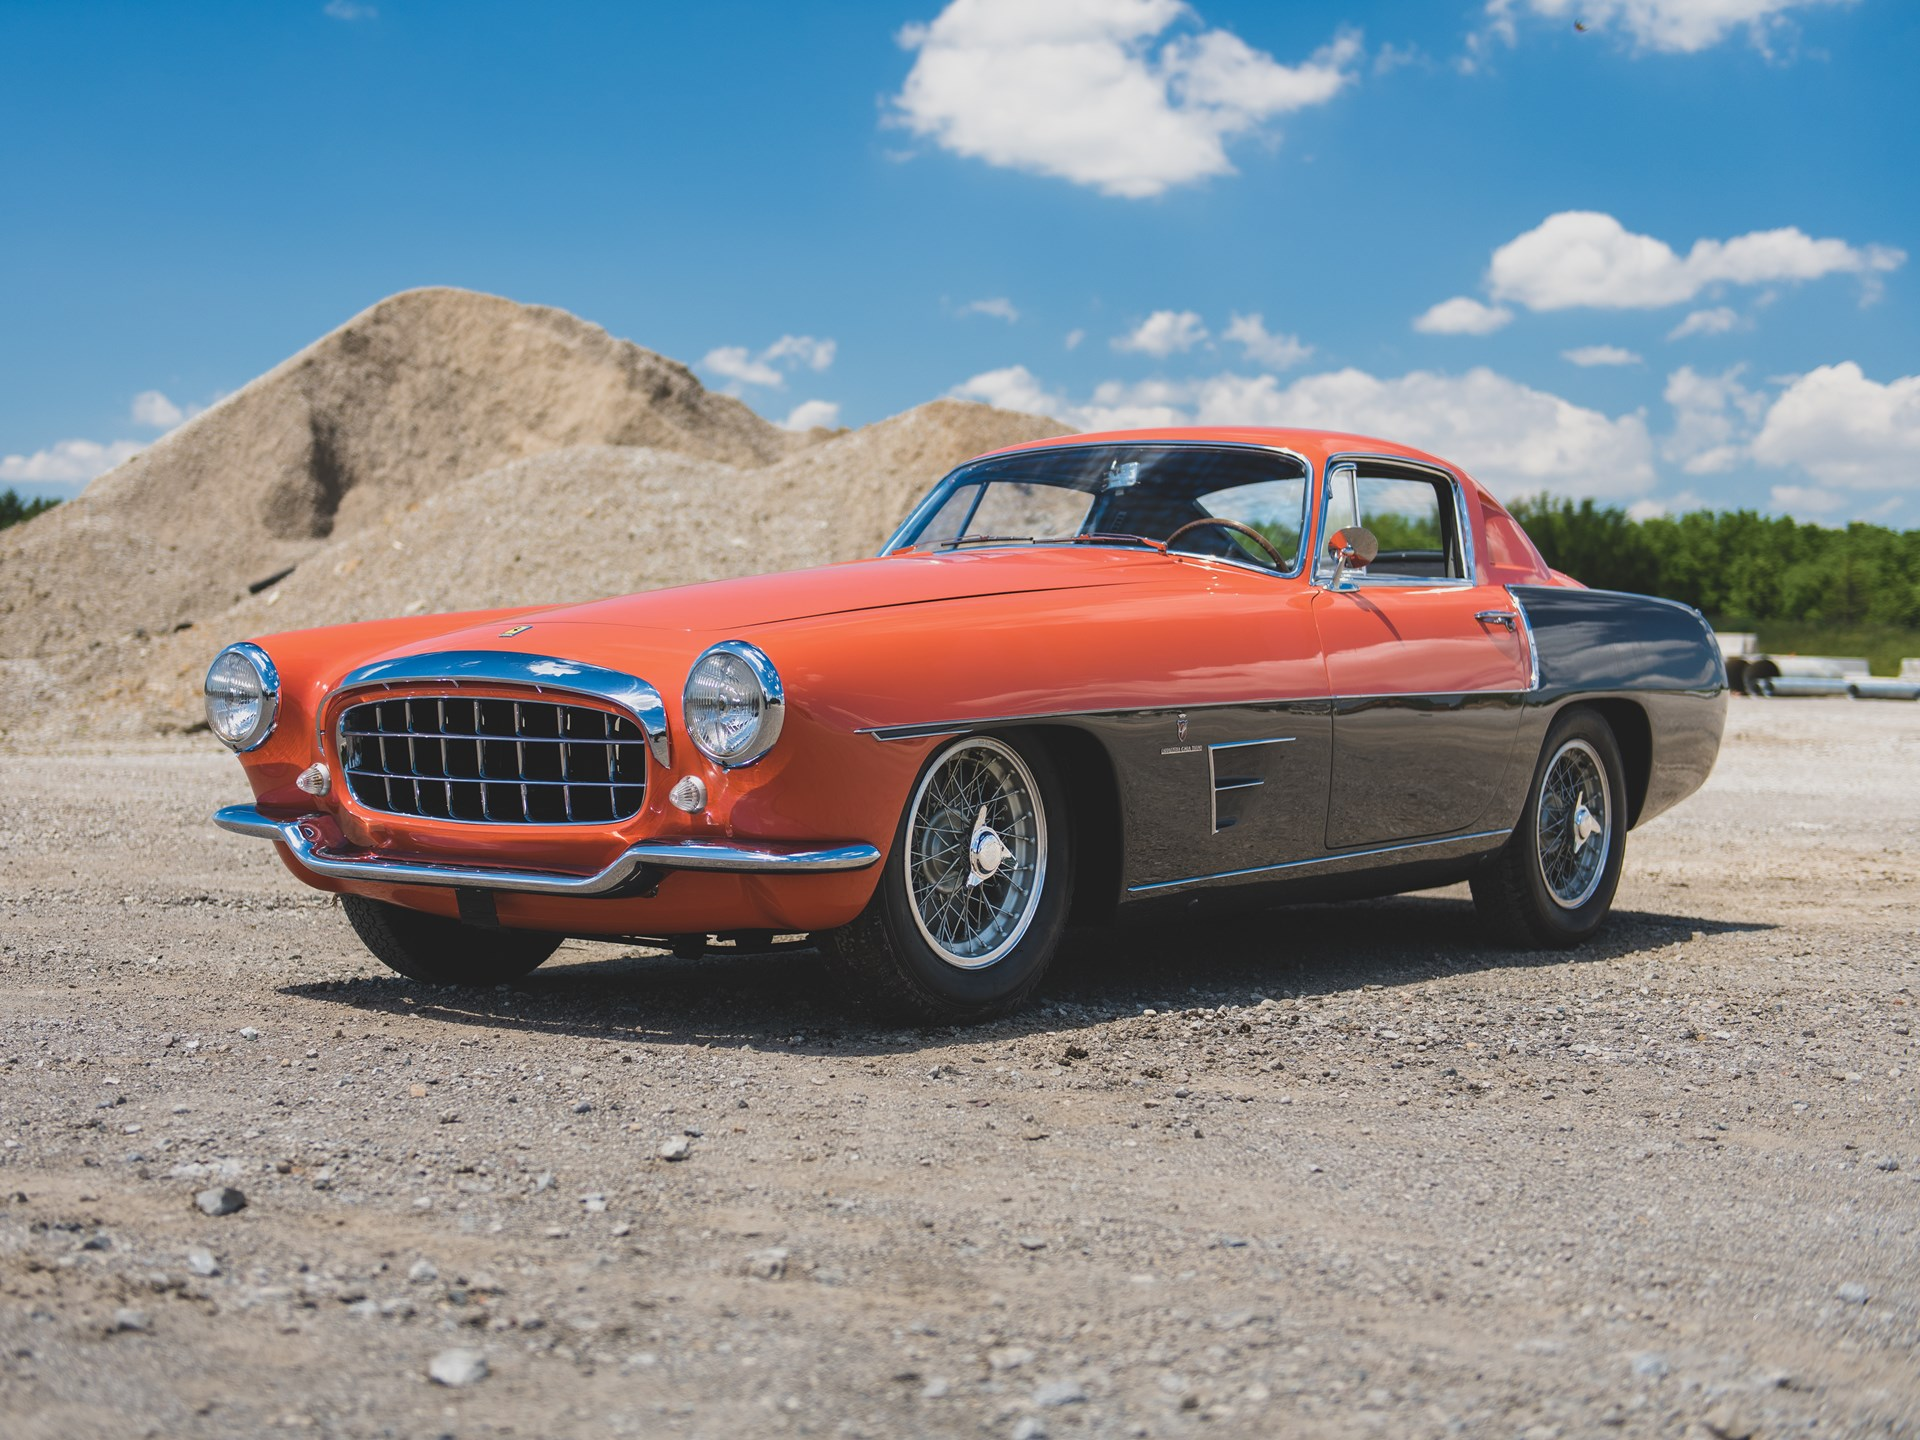 1955 Ferrari 375 MM Coupe Speciale by Ghia